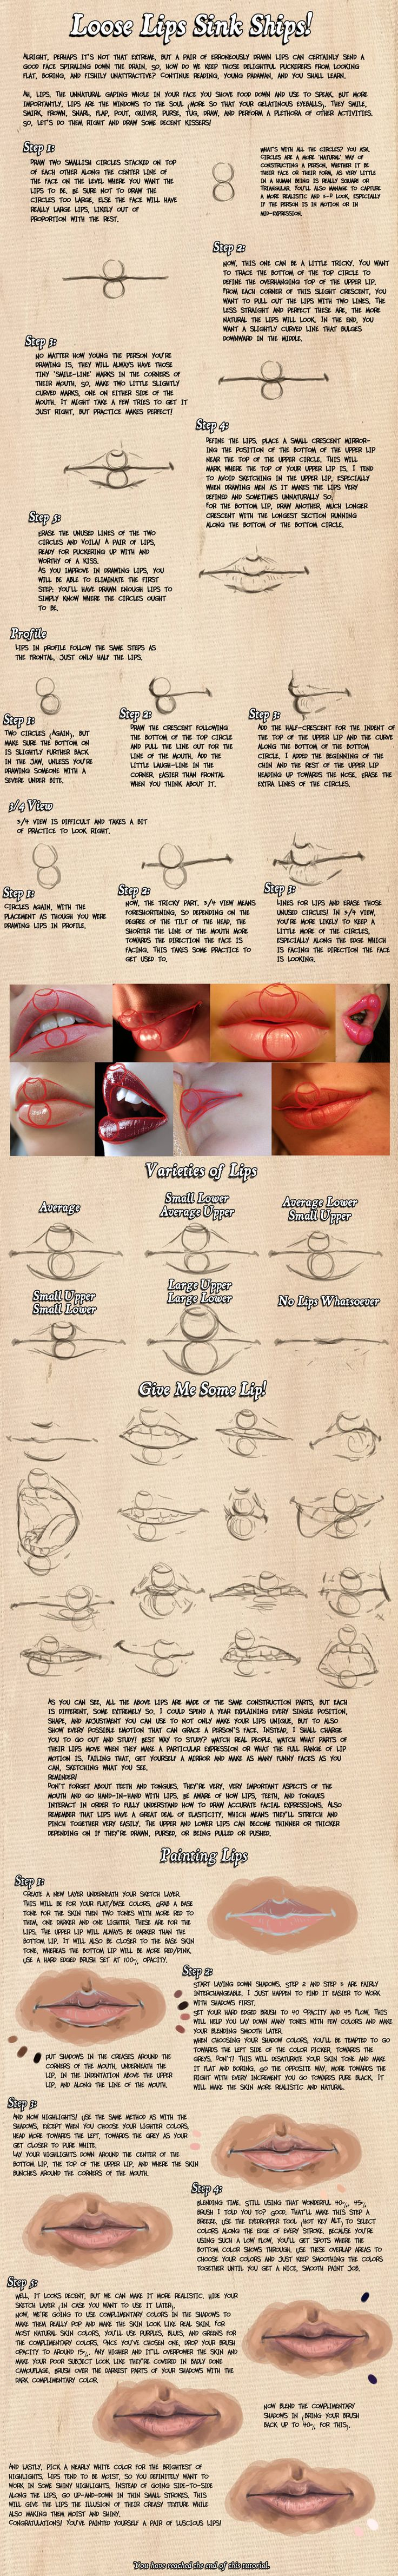 Drawing lips ✤ || CHARACTER DESIGN REFERENCES | キャラクターデザイン • Find more at https://www.facebook.com/CharacterDesignReferences if you're looking for: #lineart #art #character #design #animation #draw #boca #reference #anatomy #embouchure #artist #pose #gestures #how #to #tutorial #comics #conceptart #modelsheet #bocca #uvula #tongue #smiling #smile #tooth #teeth #lips #lip #mouths #mouth #grin #smirk || ✤